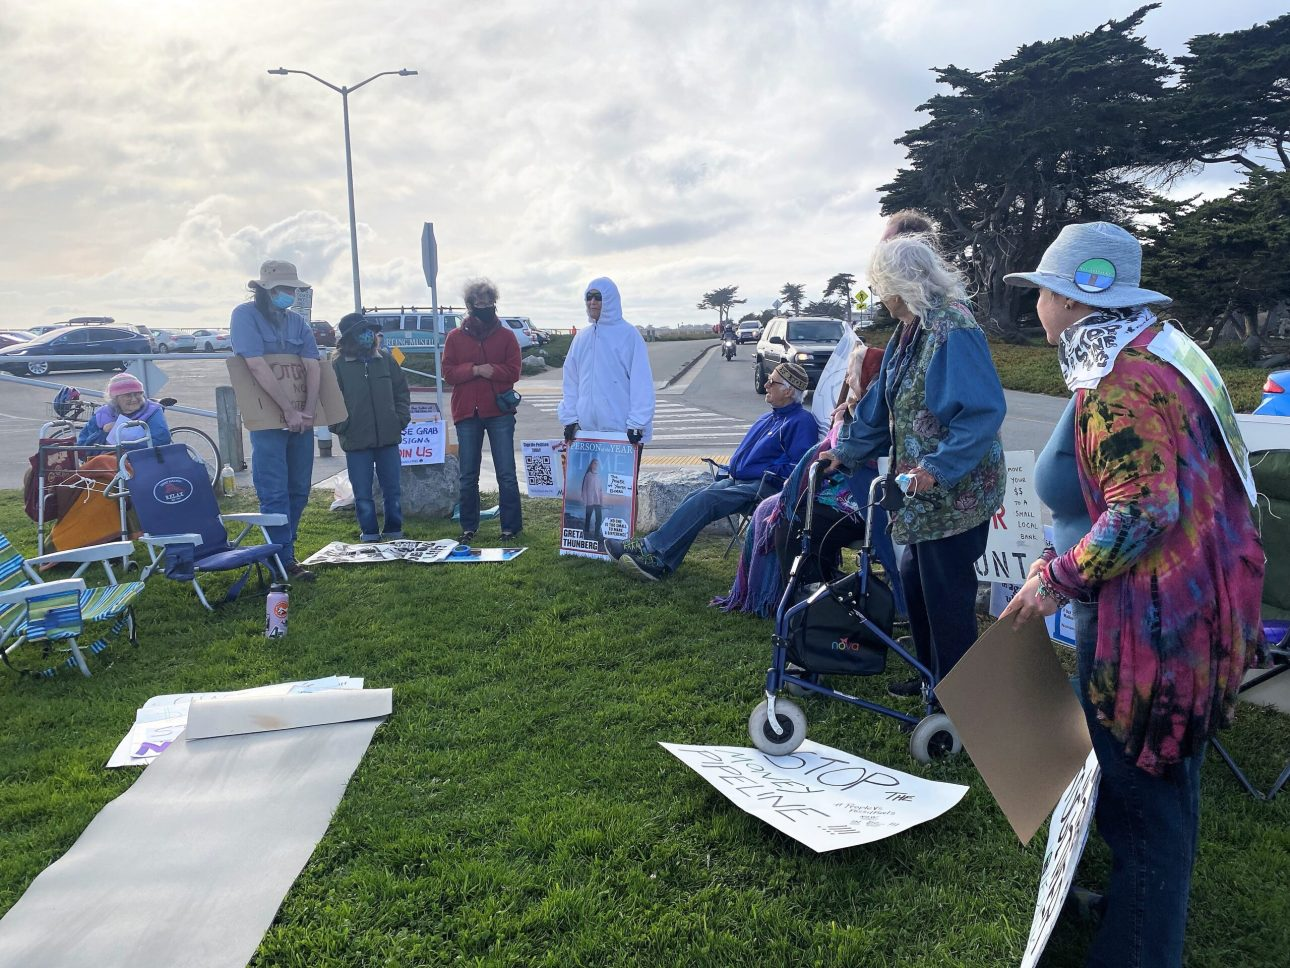 #Faiths4ClimateJustice in Action at Climate, Land & Water Meditation in Santa Cruz, California, 17 October 2021. Photo by Kate Sawtell.